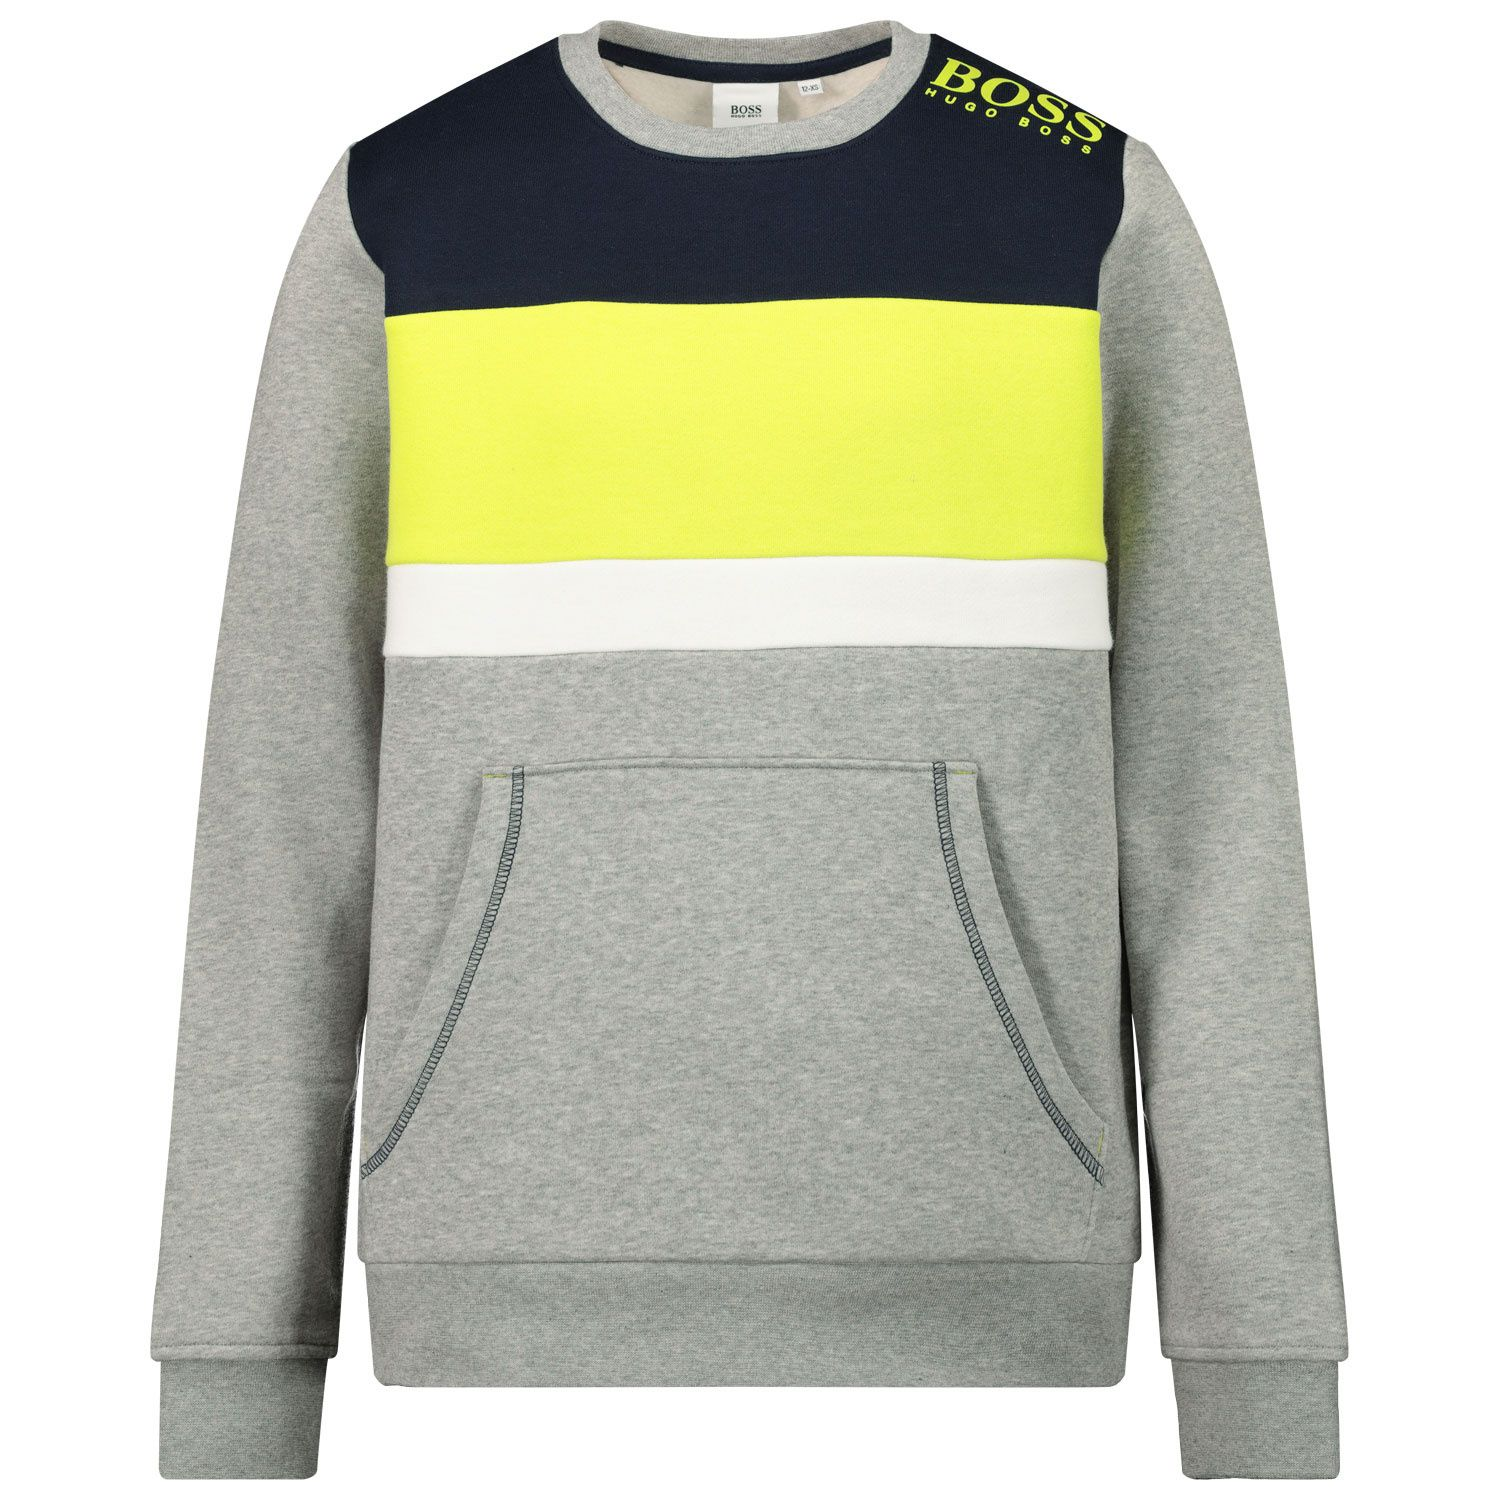 Picture of Boss J25G73 kids sweater grey